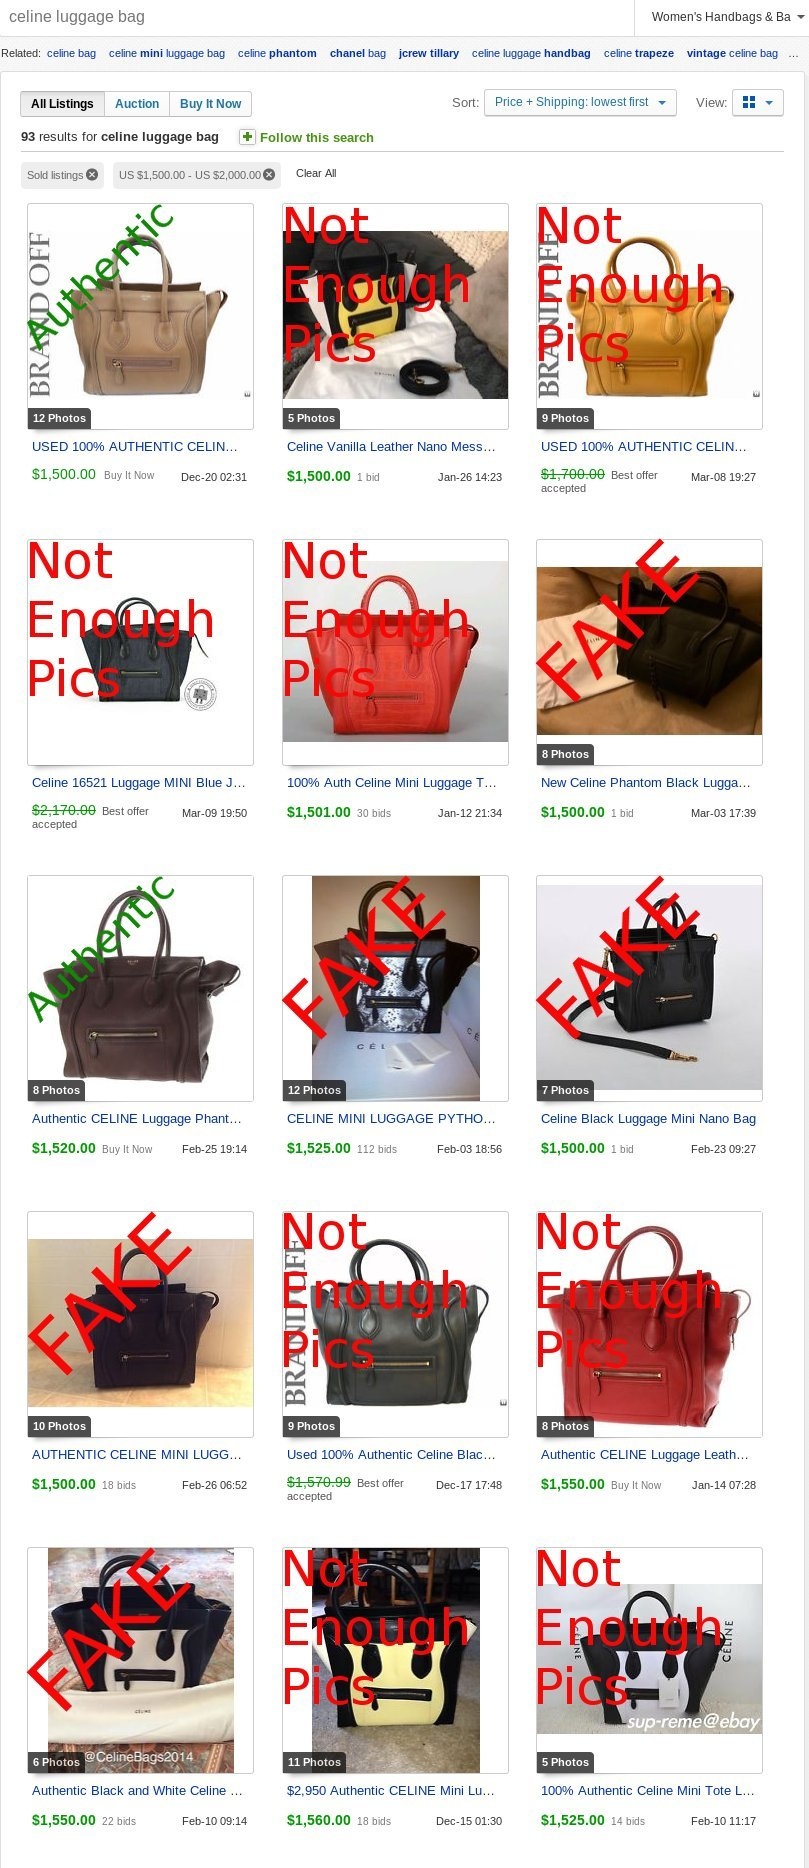 celine replica handbag - Counterfeit Celine Selling for LOTS of Money | Lollipuff